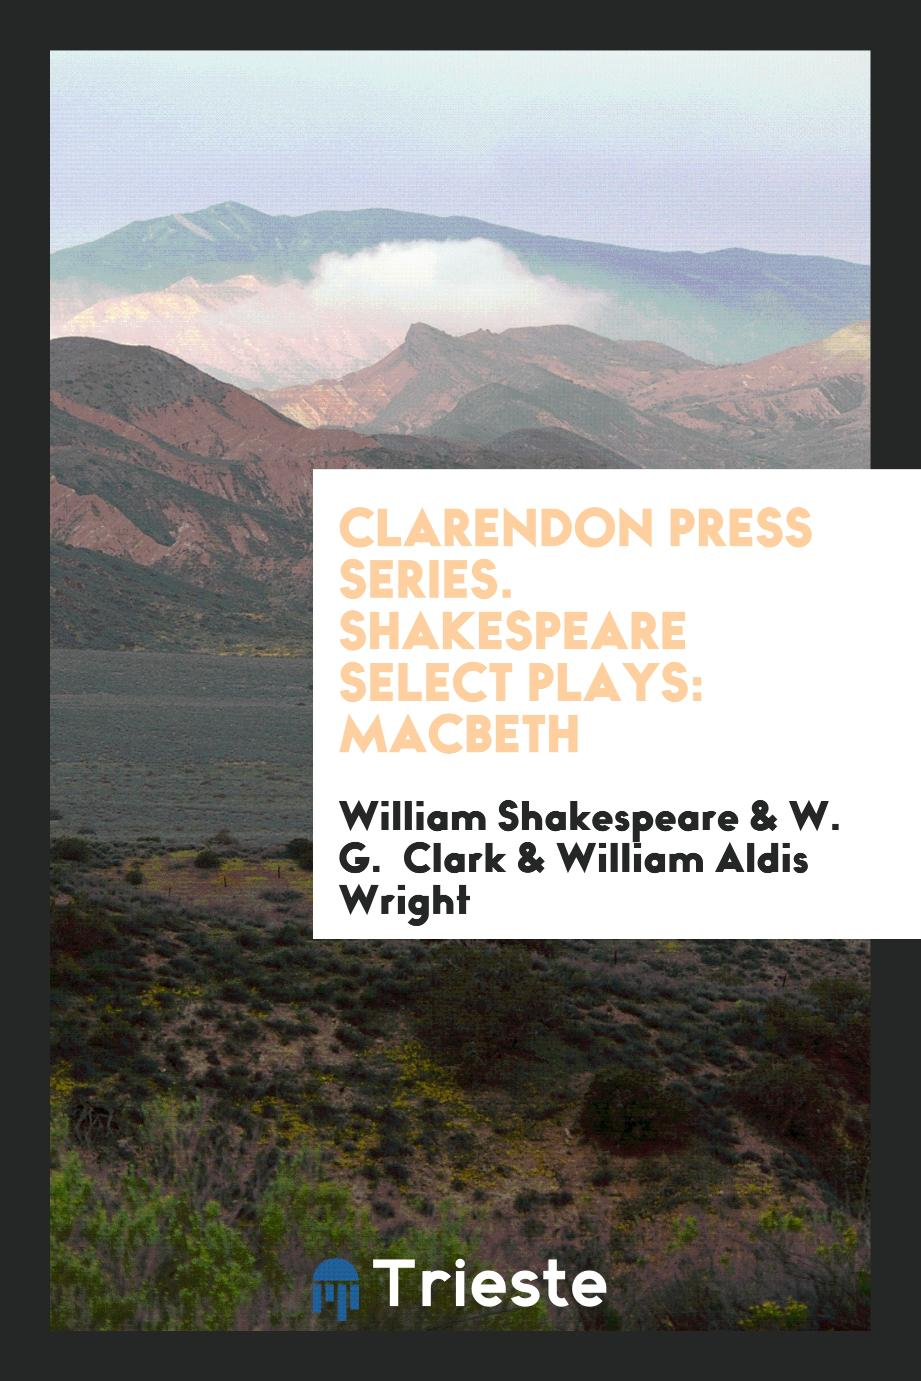 Clarendon Press Series. Shakespeare Select Plays: Macbeth